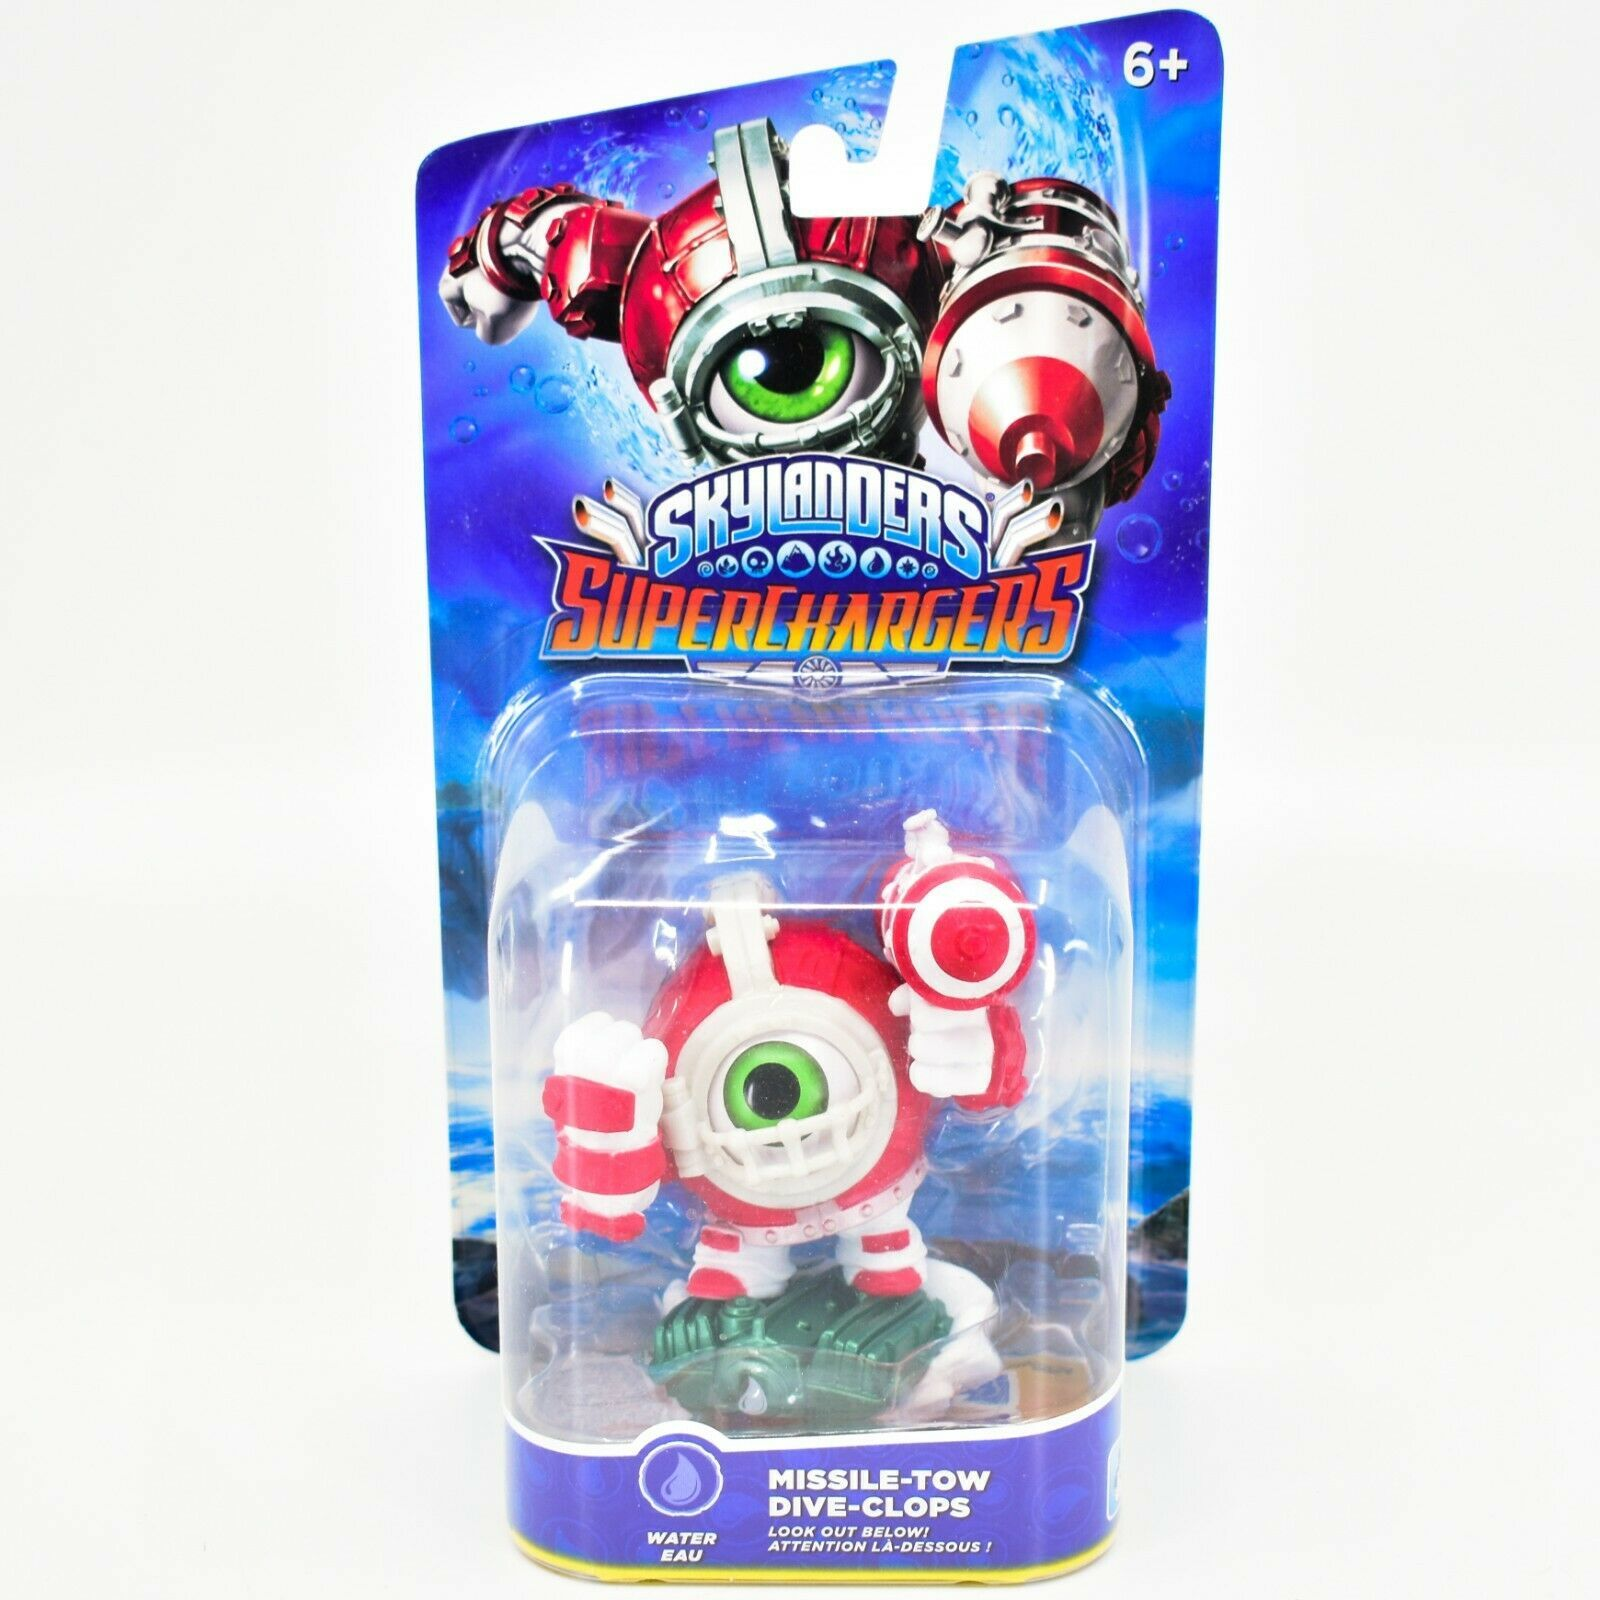 Activision Skylanders Superchargers Missile-Tow Dive-Clops Water Character